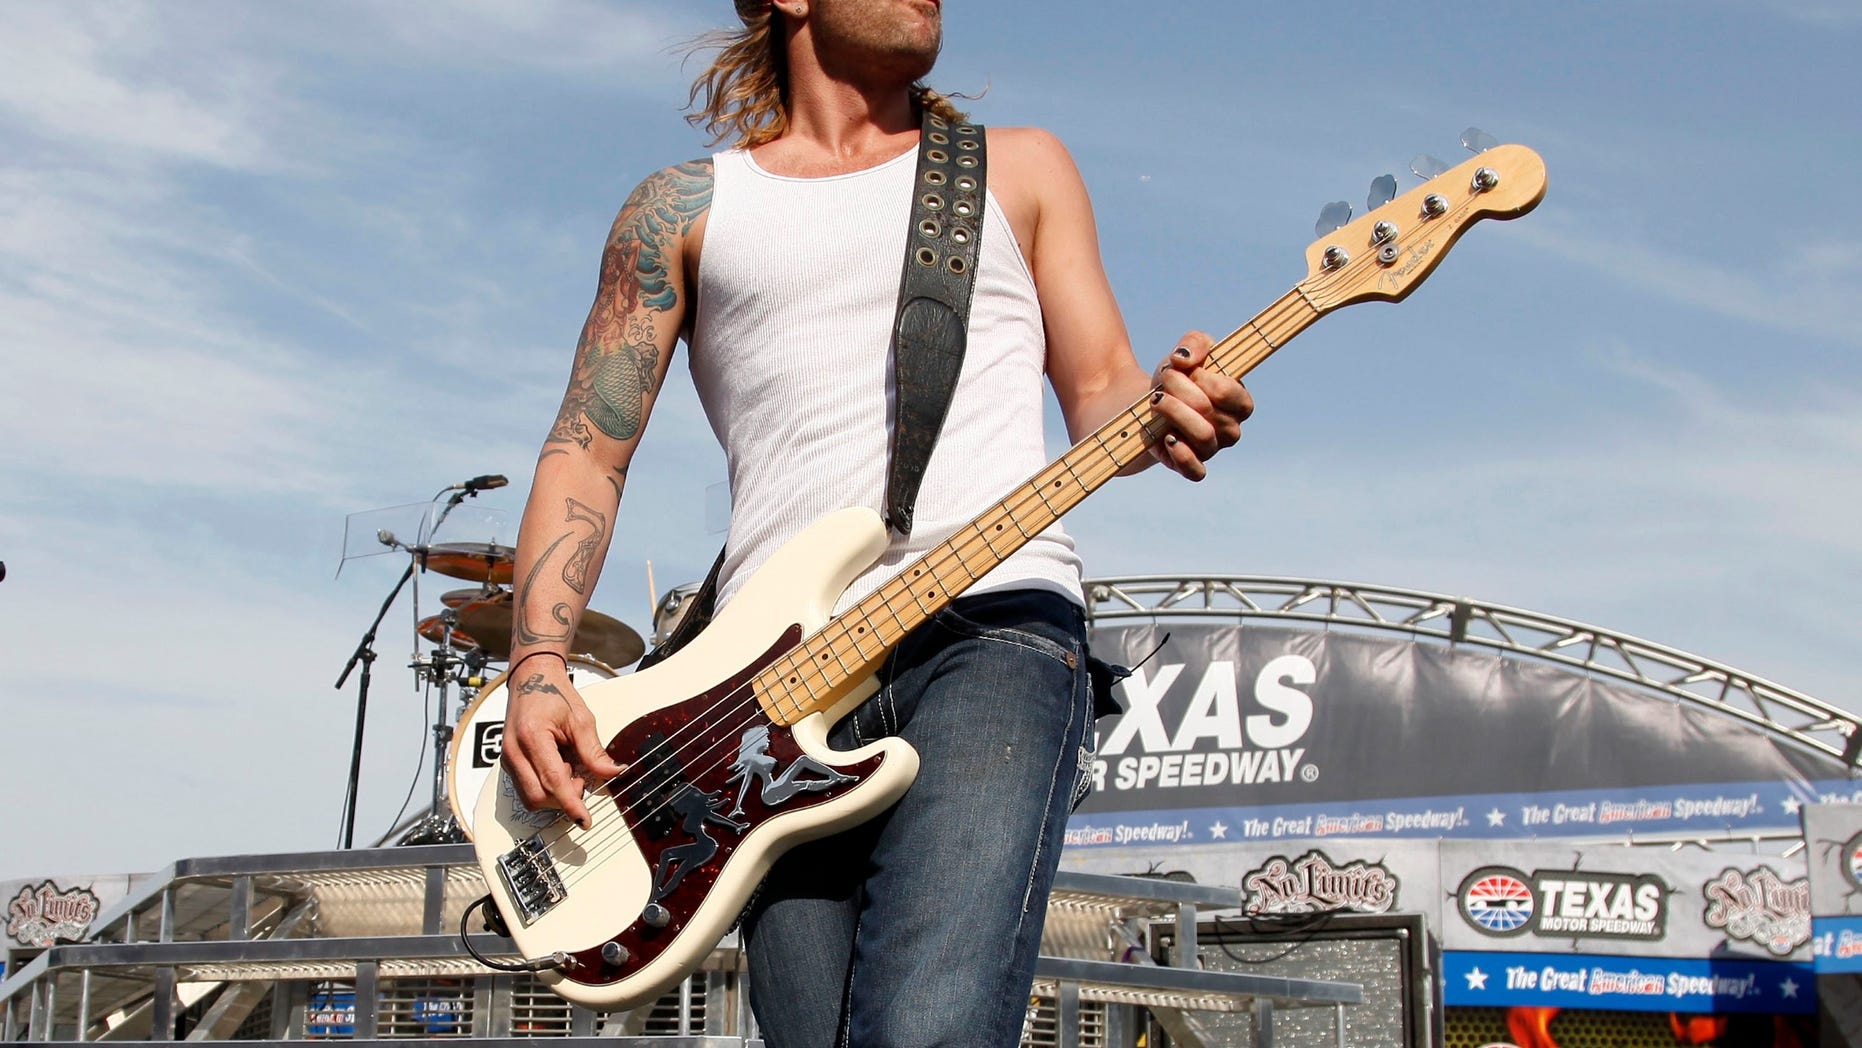 FILE - In this April 9, 2011 file photo, 3 Doors Down' bassist Todd Harrell performs before a NASCAR auto race at Texas Motor Speedway in Fort Worth, Texas. Harrell, the founding member and former bassist of the rock band 3 Doors Down has been sentenced to 10 years in Mississippi state prison for possession of a firearm by a felon. News outlets report Jackson County Circuit Court Judge Robert Krebs gave Todd Harrell the maximum penalty during a hearing Thursday, Oct. 11, 2018.